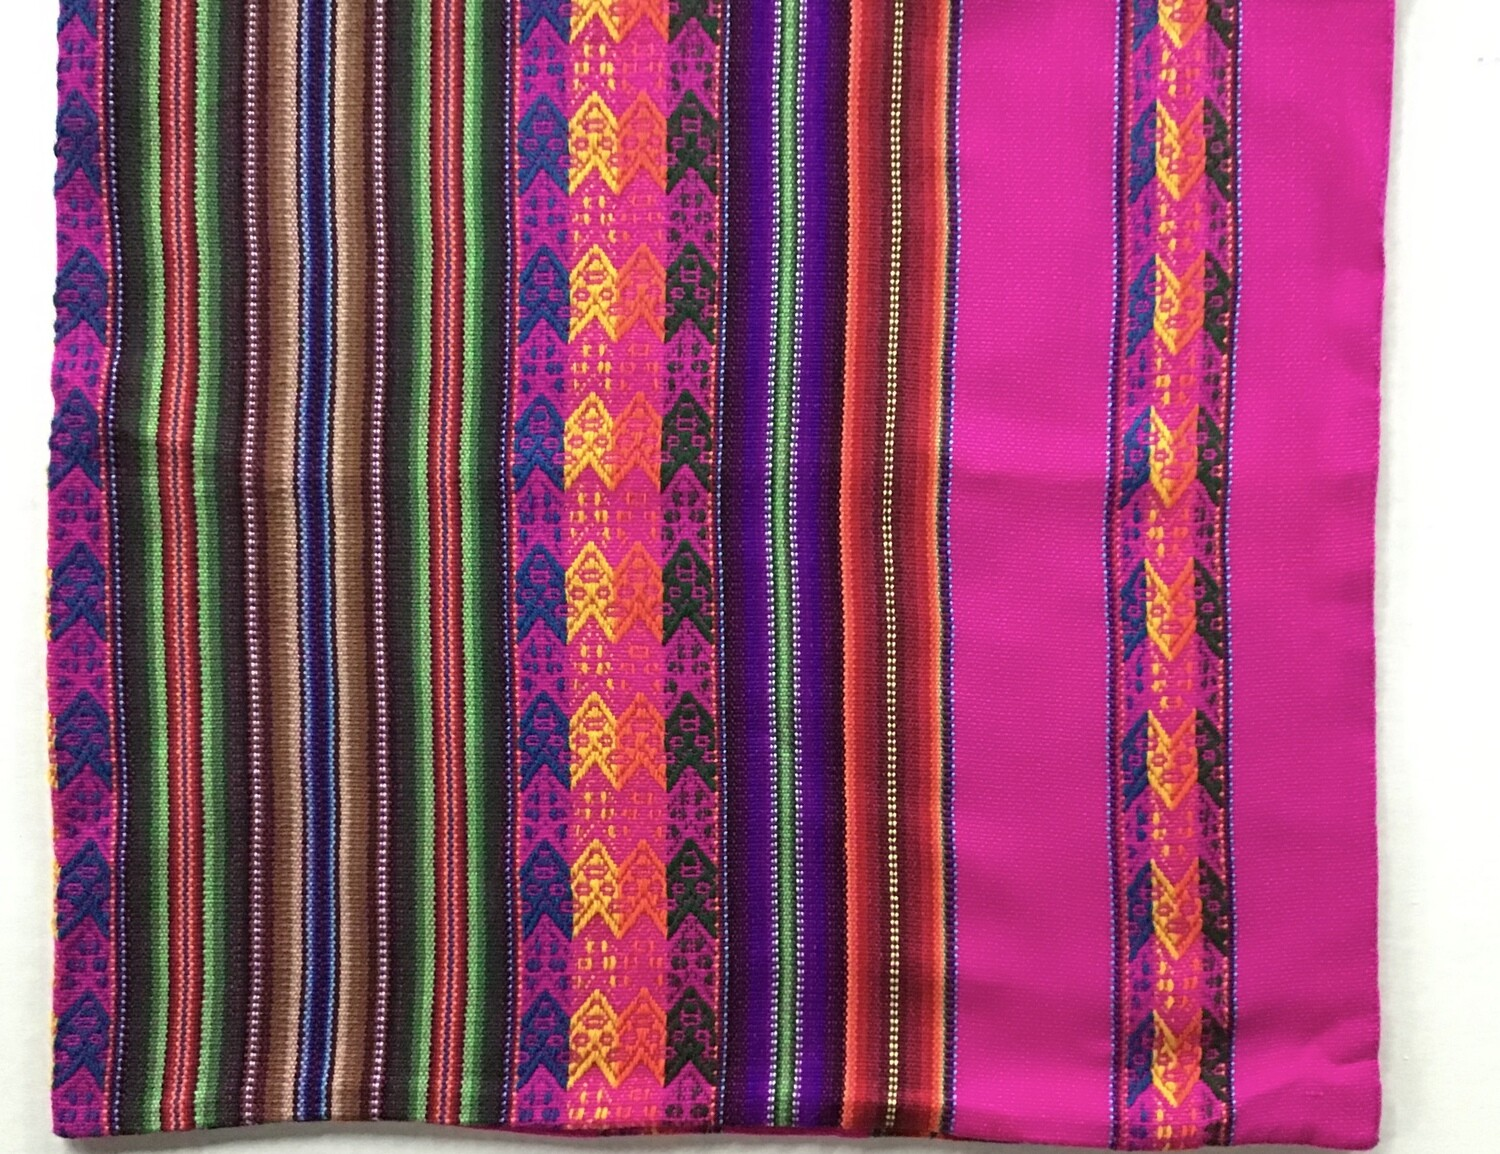 Peruvian Pillow Cover - Bright Pink